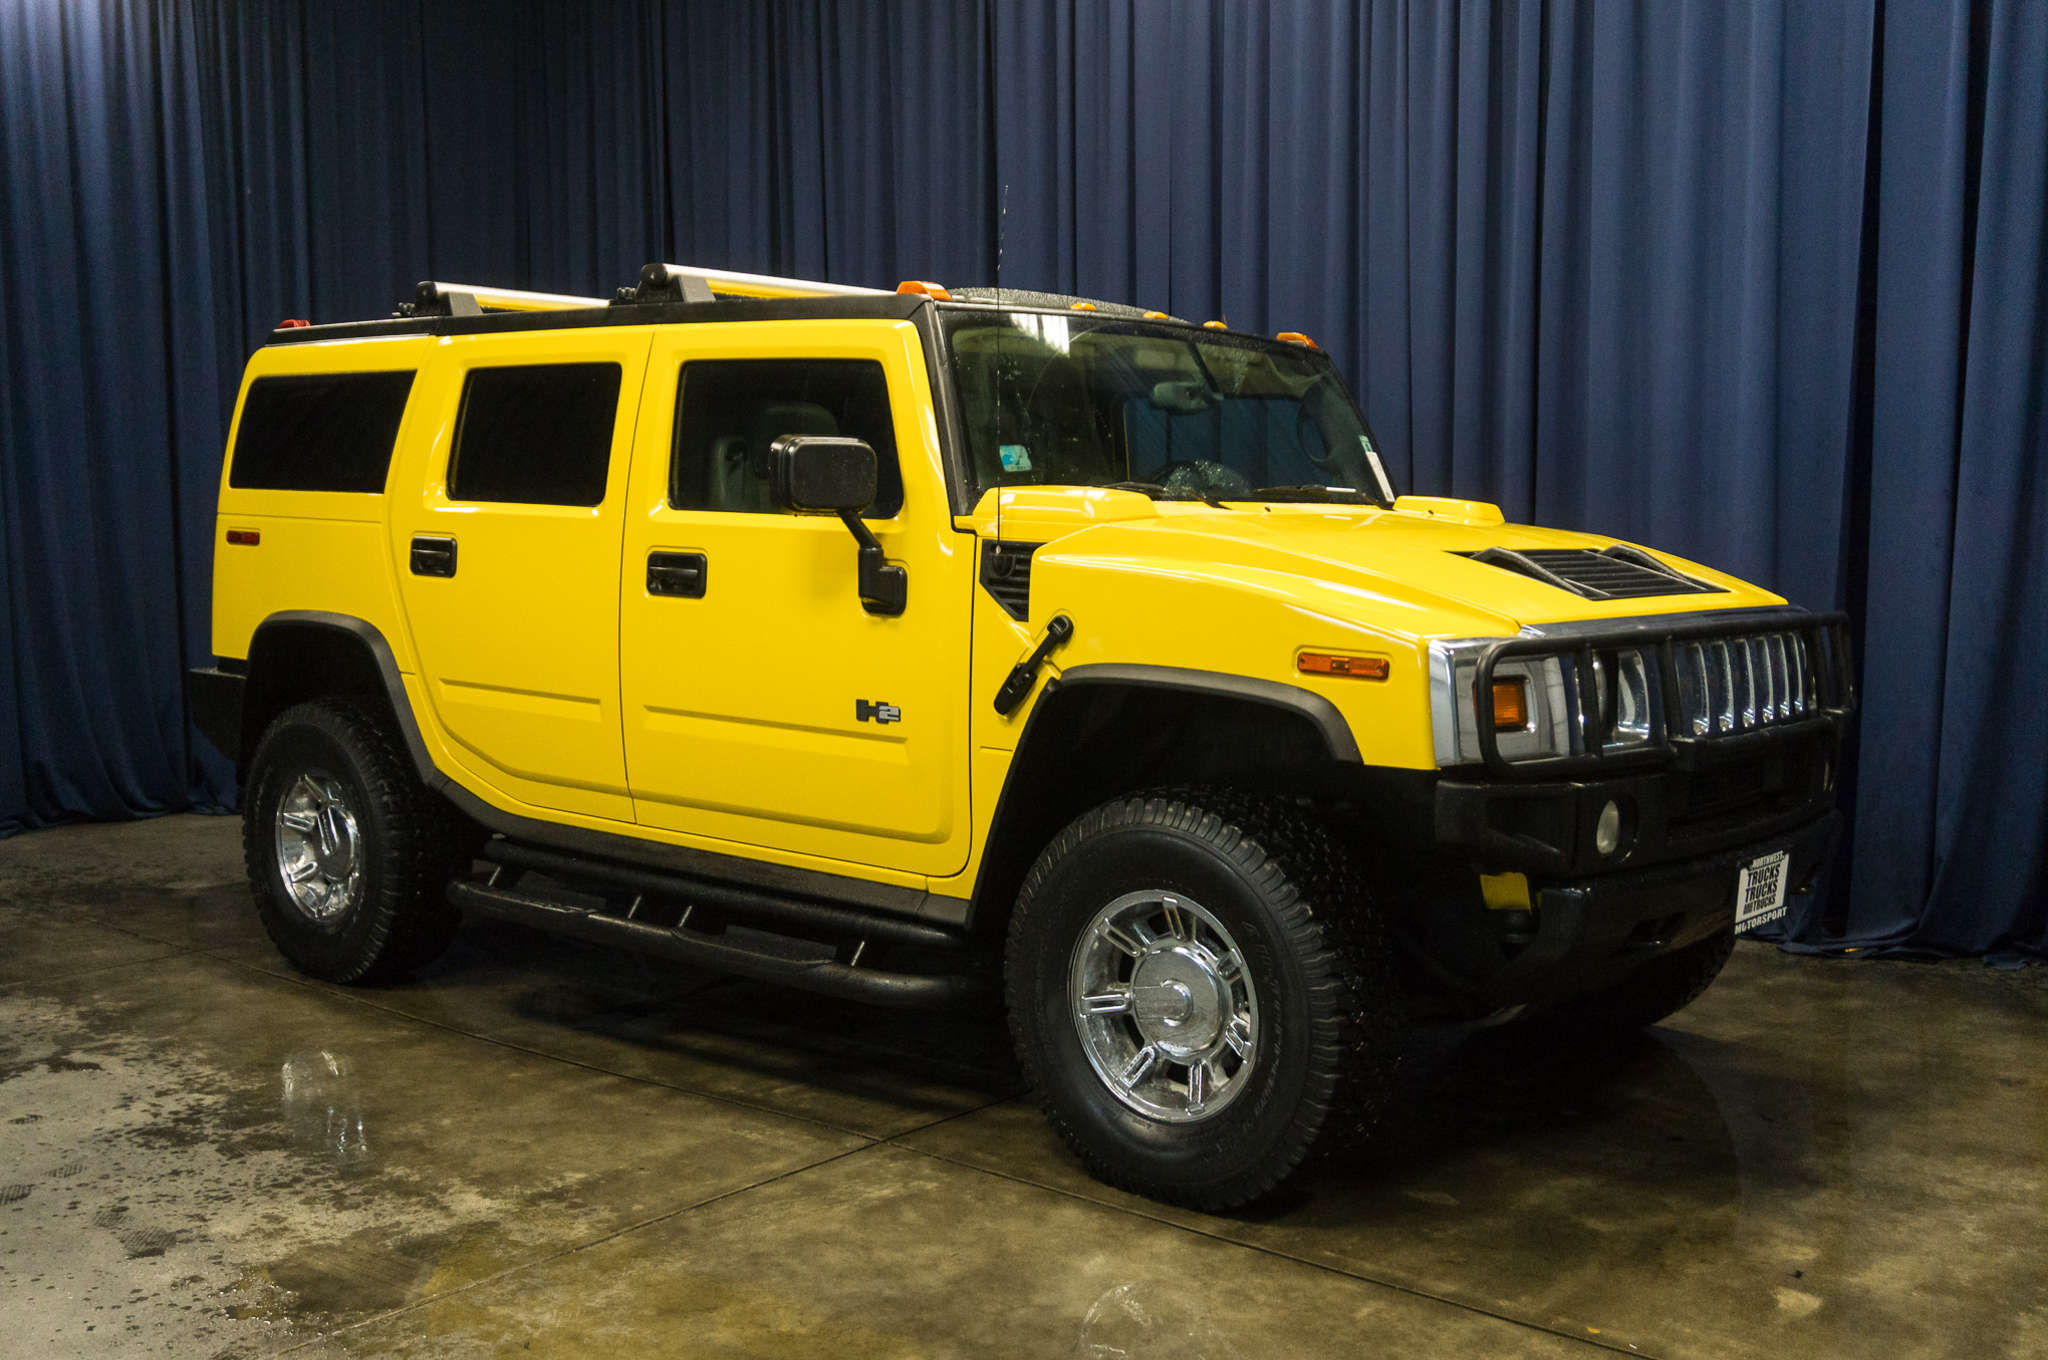 Used 2005 Hummer H2 4x4 SUV For Sale - 46612